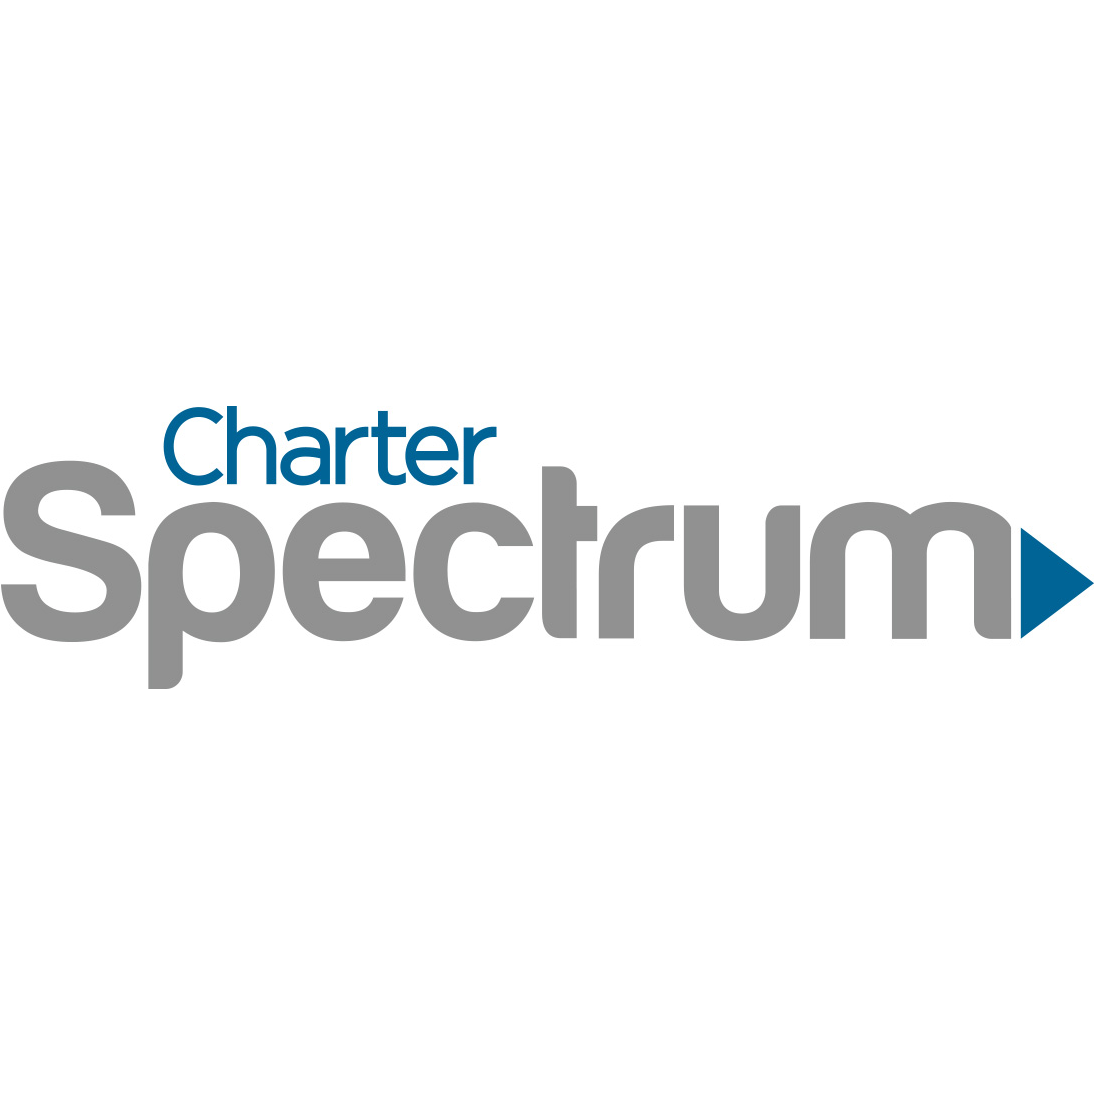 Spectrum Cable Nyc Pay Bill: Time Warner Cable is now Spectrumrh:democratandchronicle.com,Design